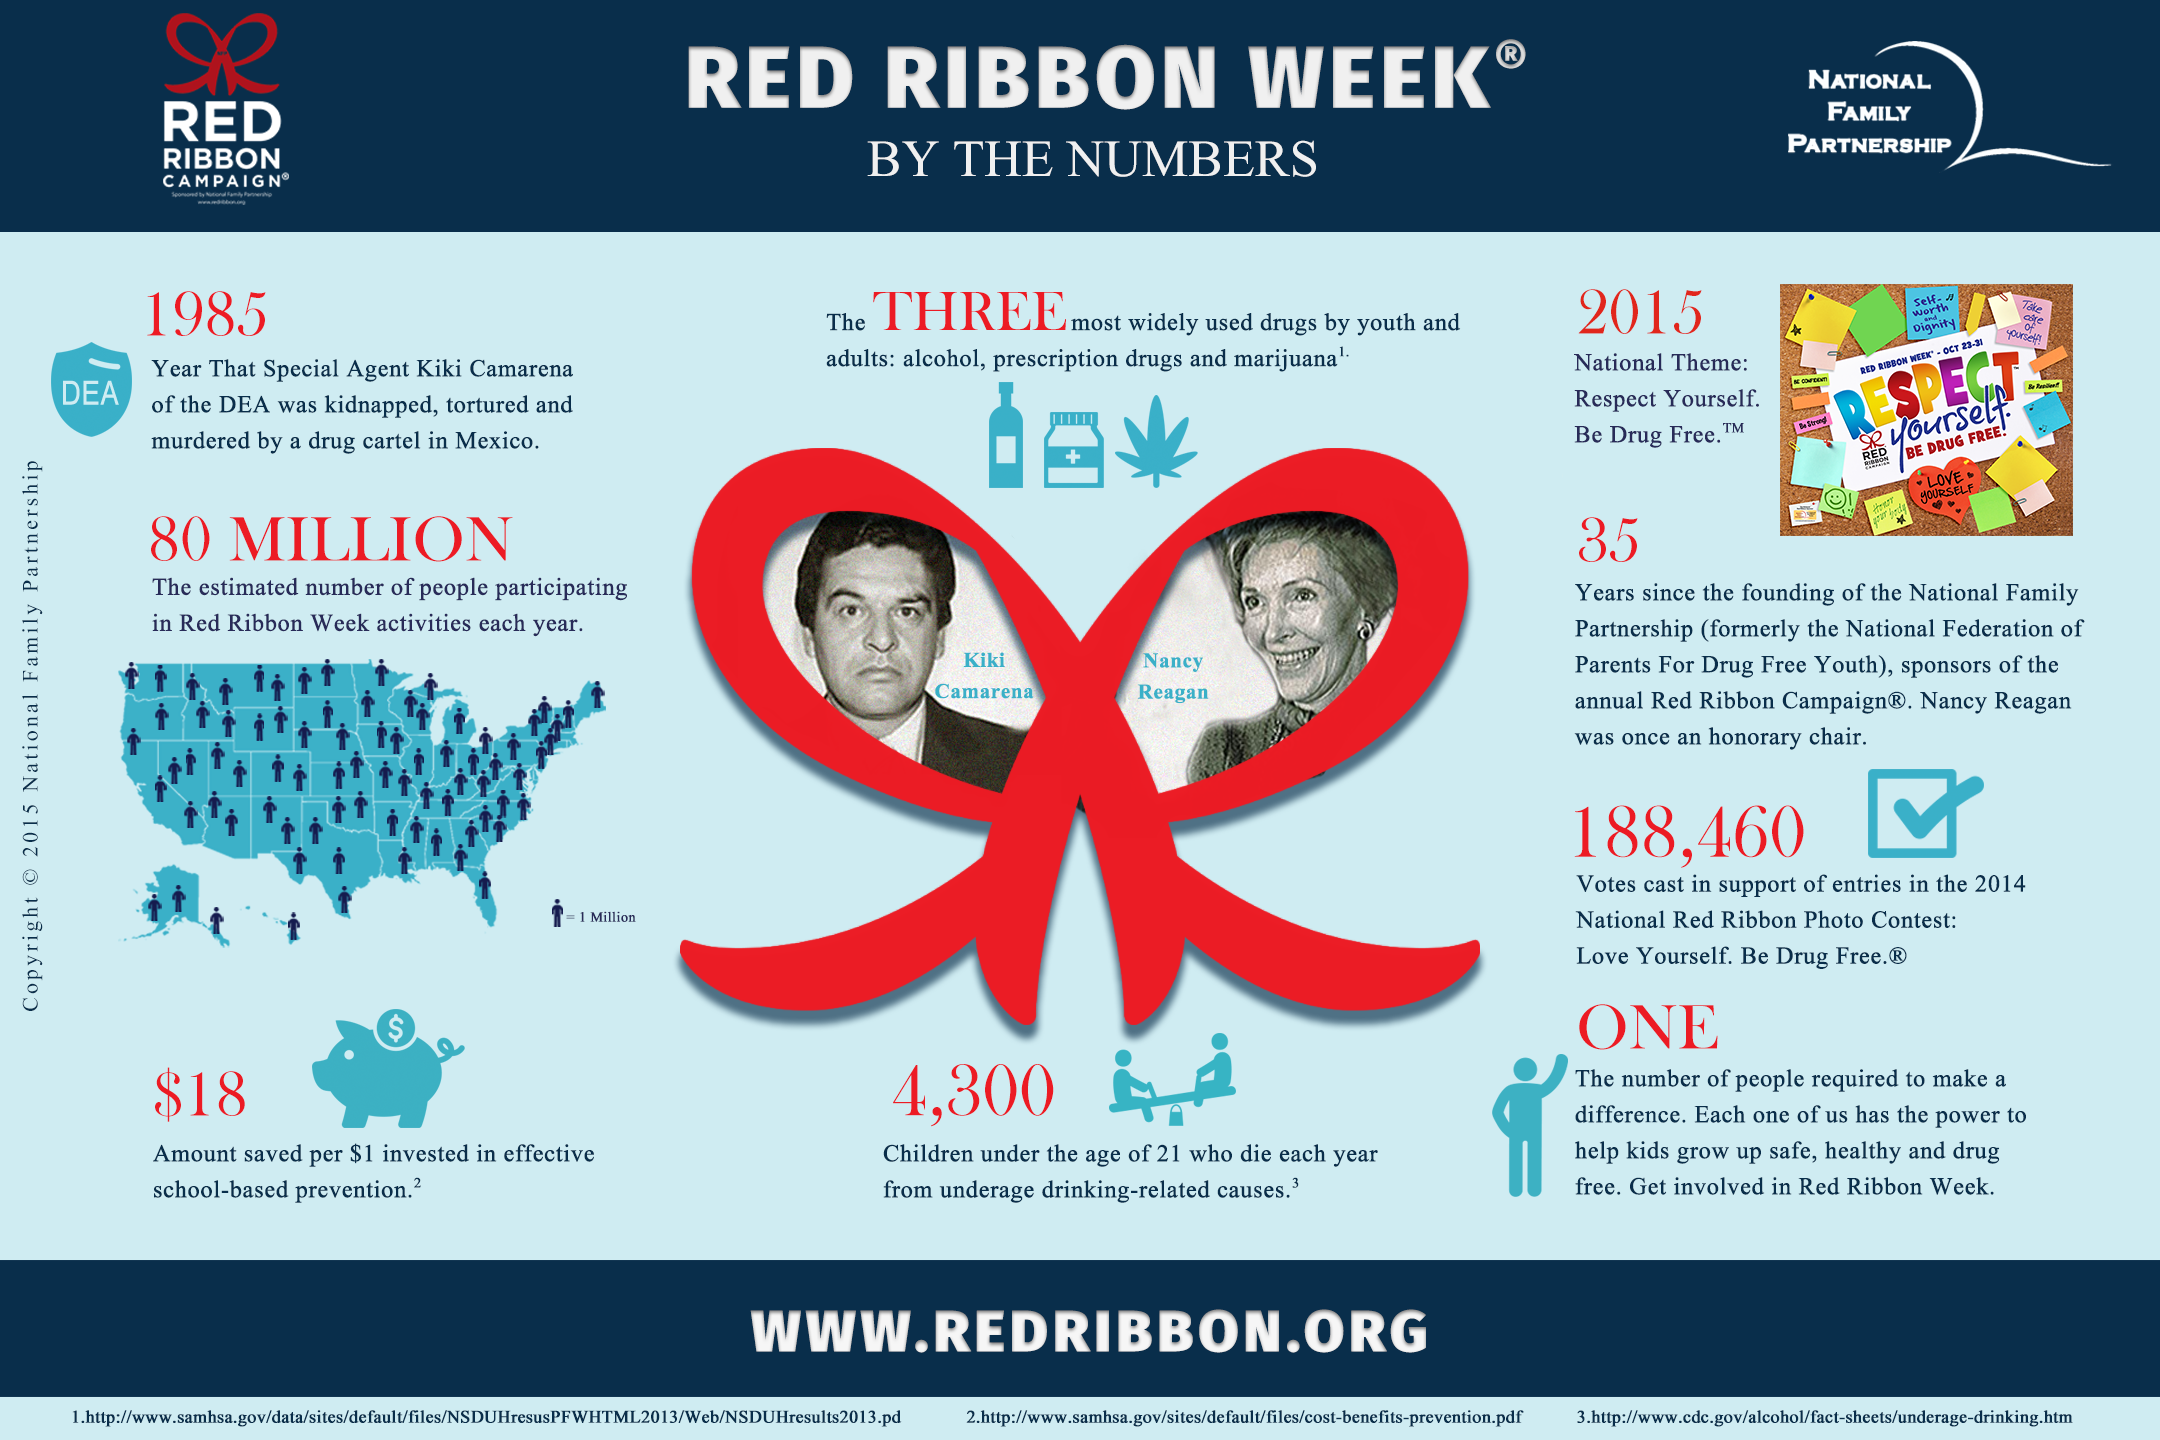 'Be Seen Be Heard AZ' campaign to draw attention to dangers of drug use RedRibbonWeekInfographic